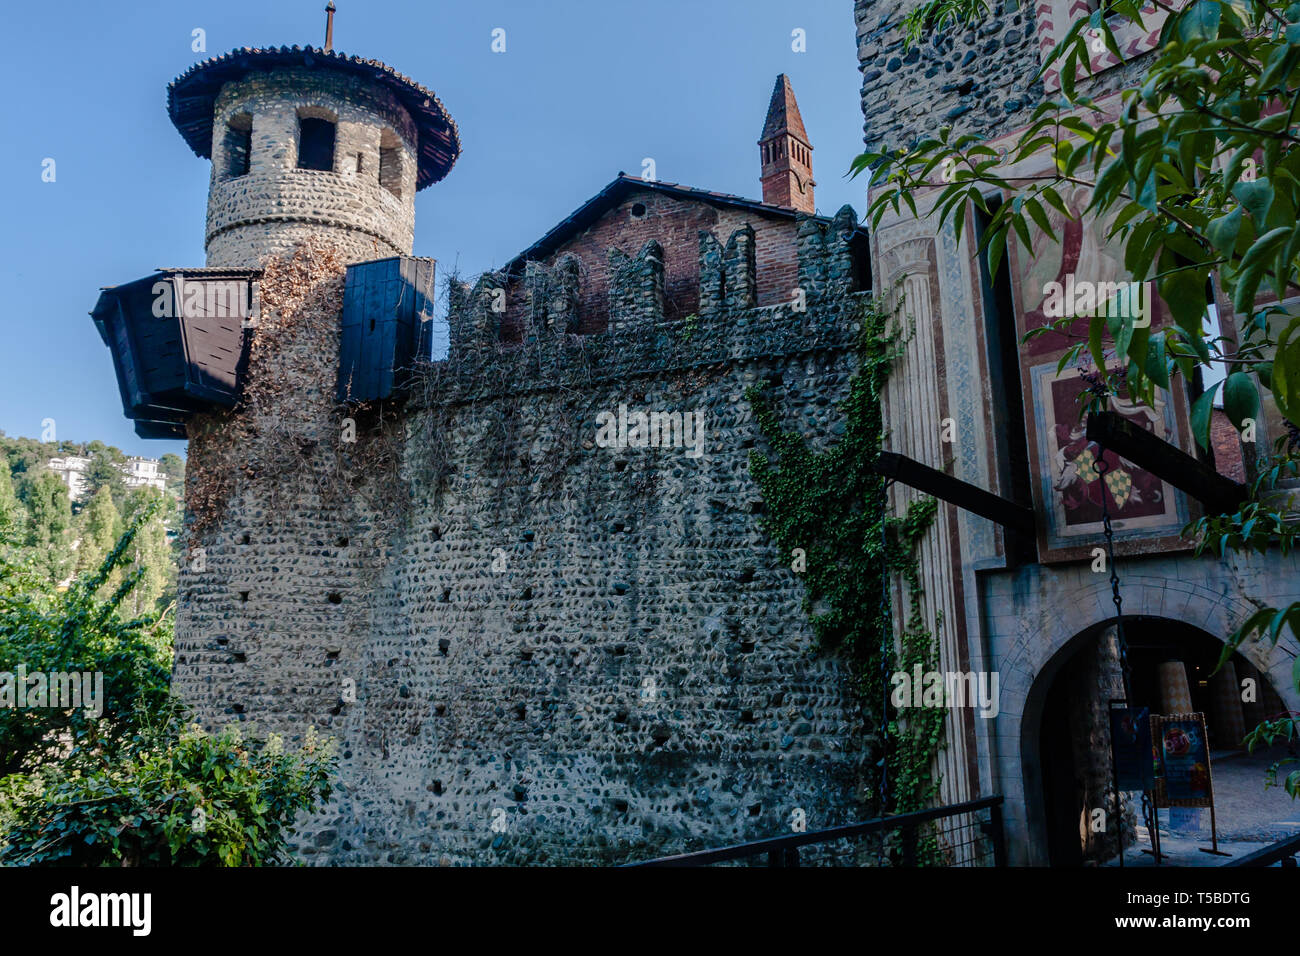 Borgo Medievale, a 19th-century reproduction of a riverside medieval village with houses, workshops, castle & gardens in Turin Stock Photo